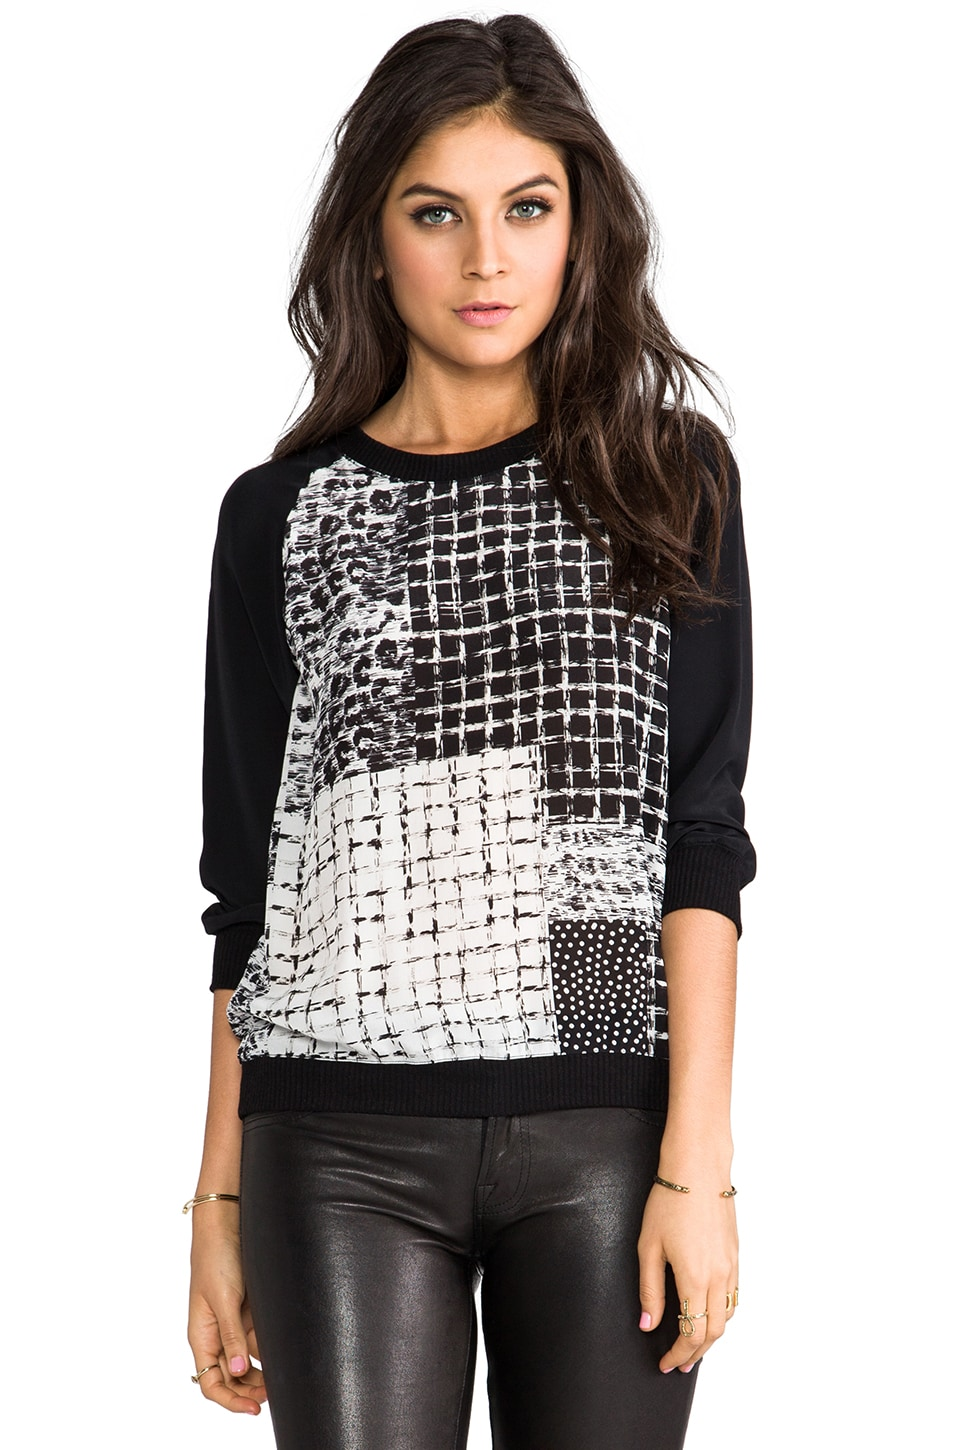 SJOBECK Lombard Patch Print Silk Sweatshirt in Black/White